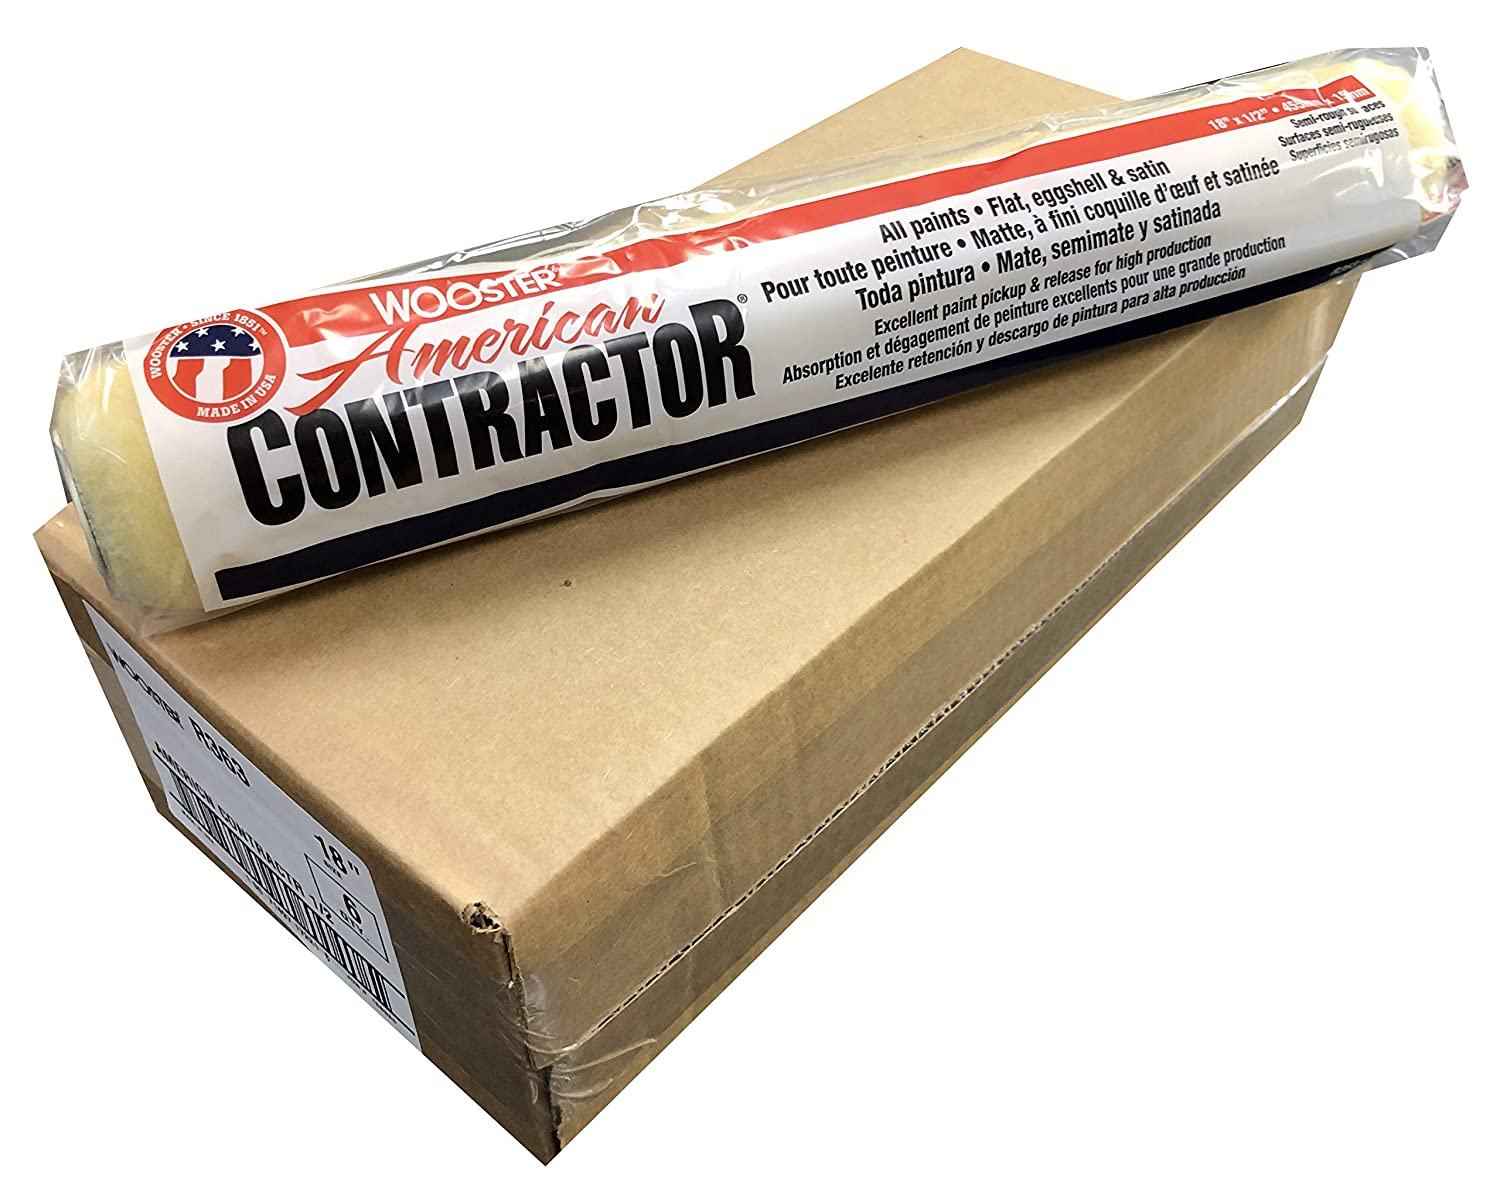 18-Inch Wooster Brush R363-18 American Contractor Roller Cover 1//2-Inch Nap